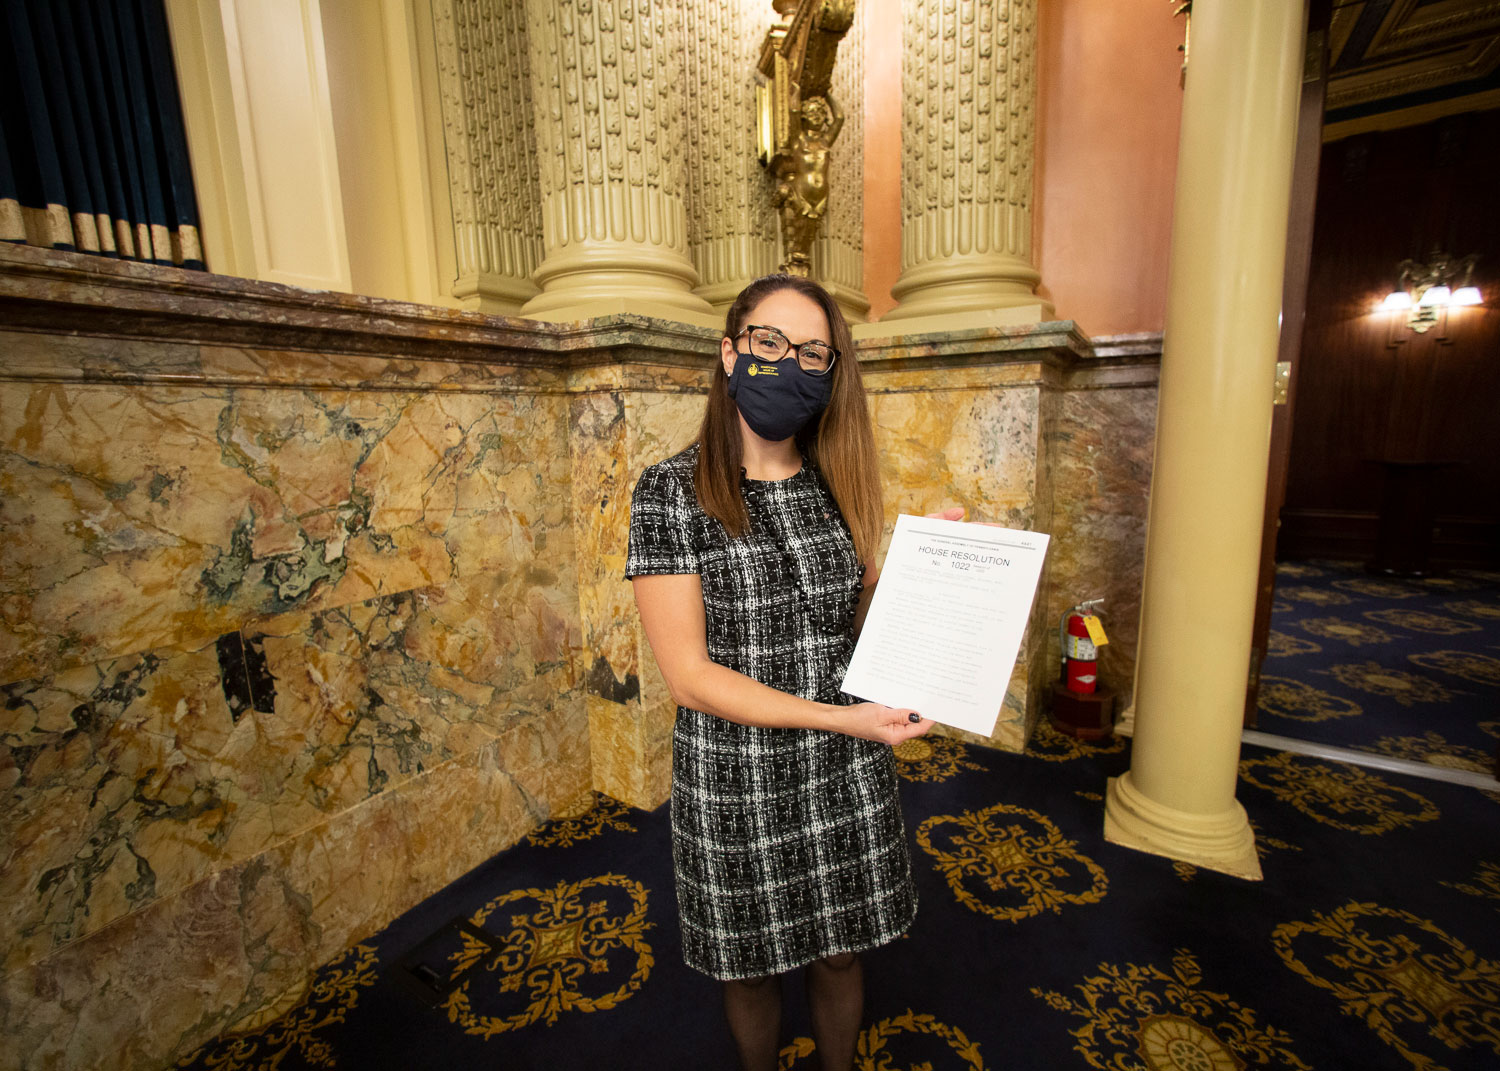 PA State Representative Megan Schroeder's Fuel Cell Day photo